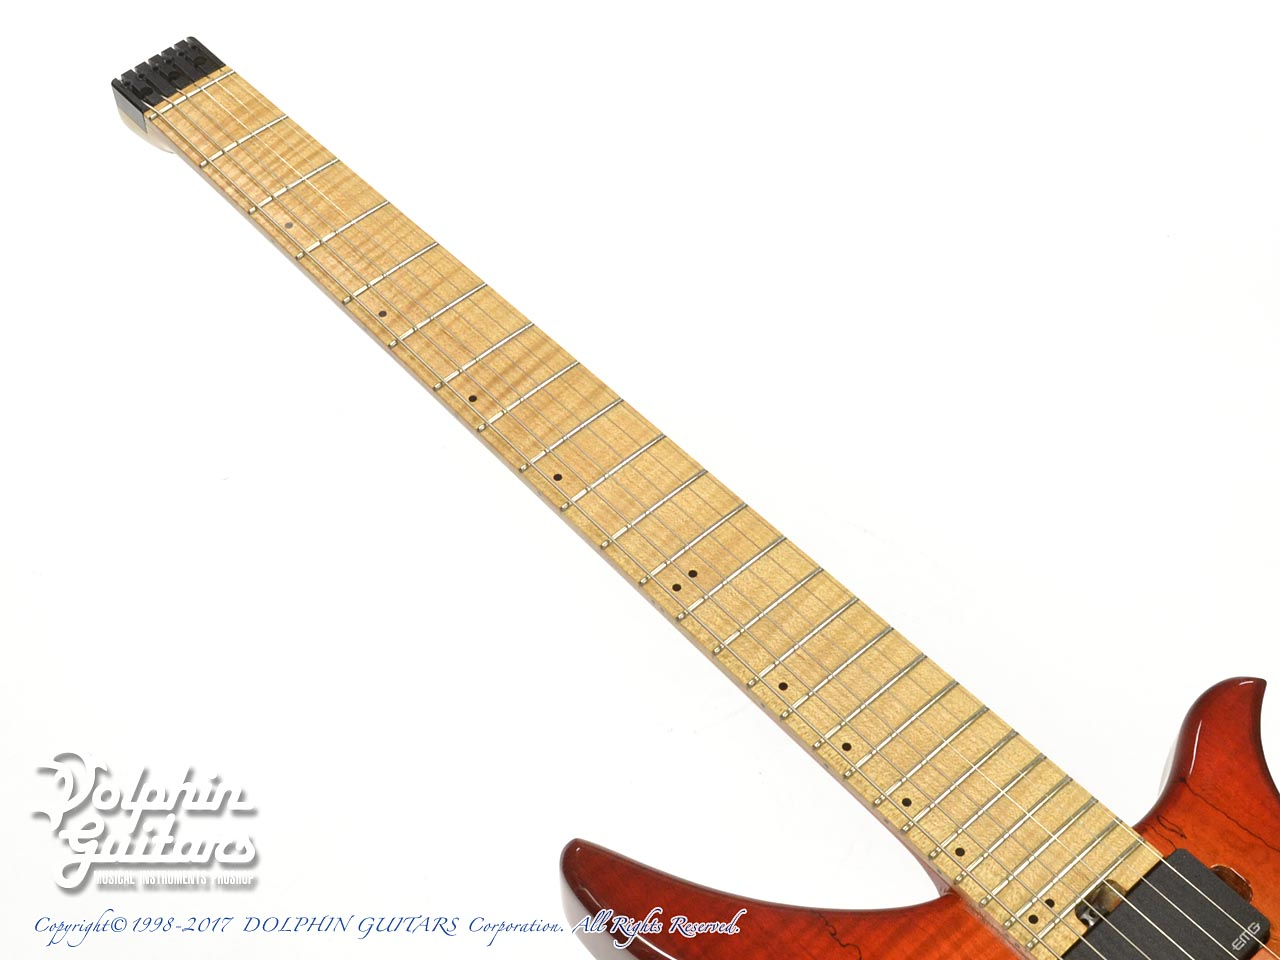 Charo's: CH-G6 Headless Guitar (Spalted Maple)  (5)